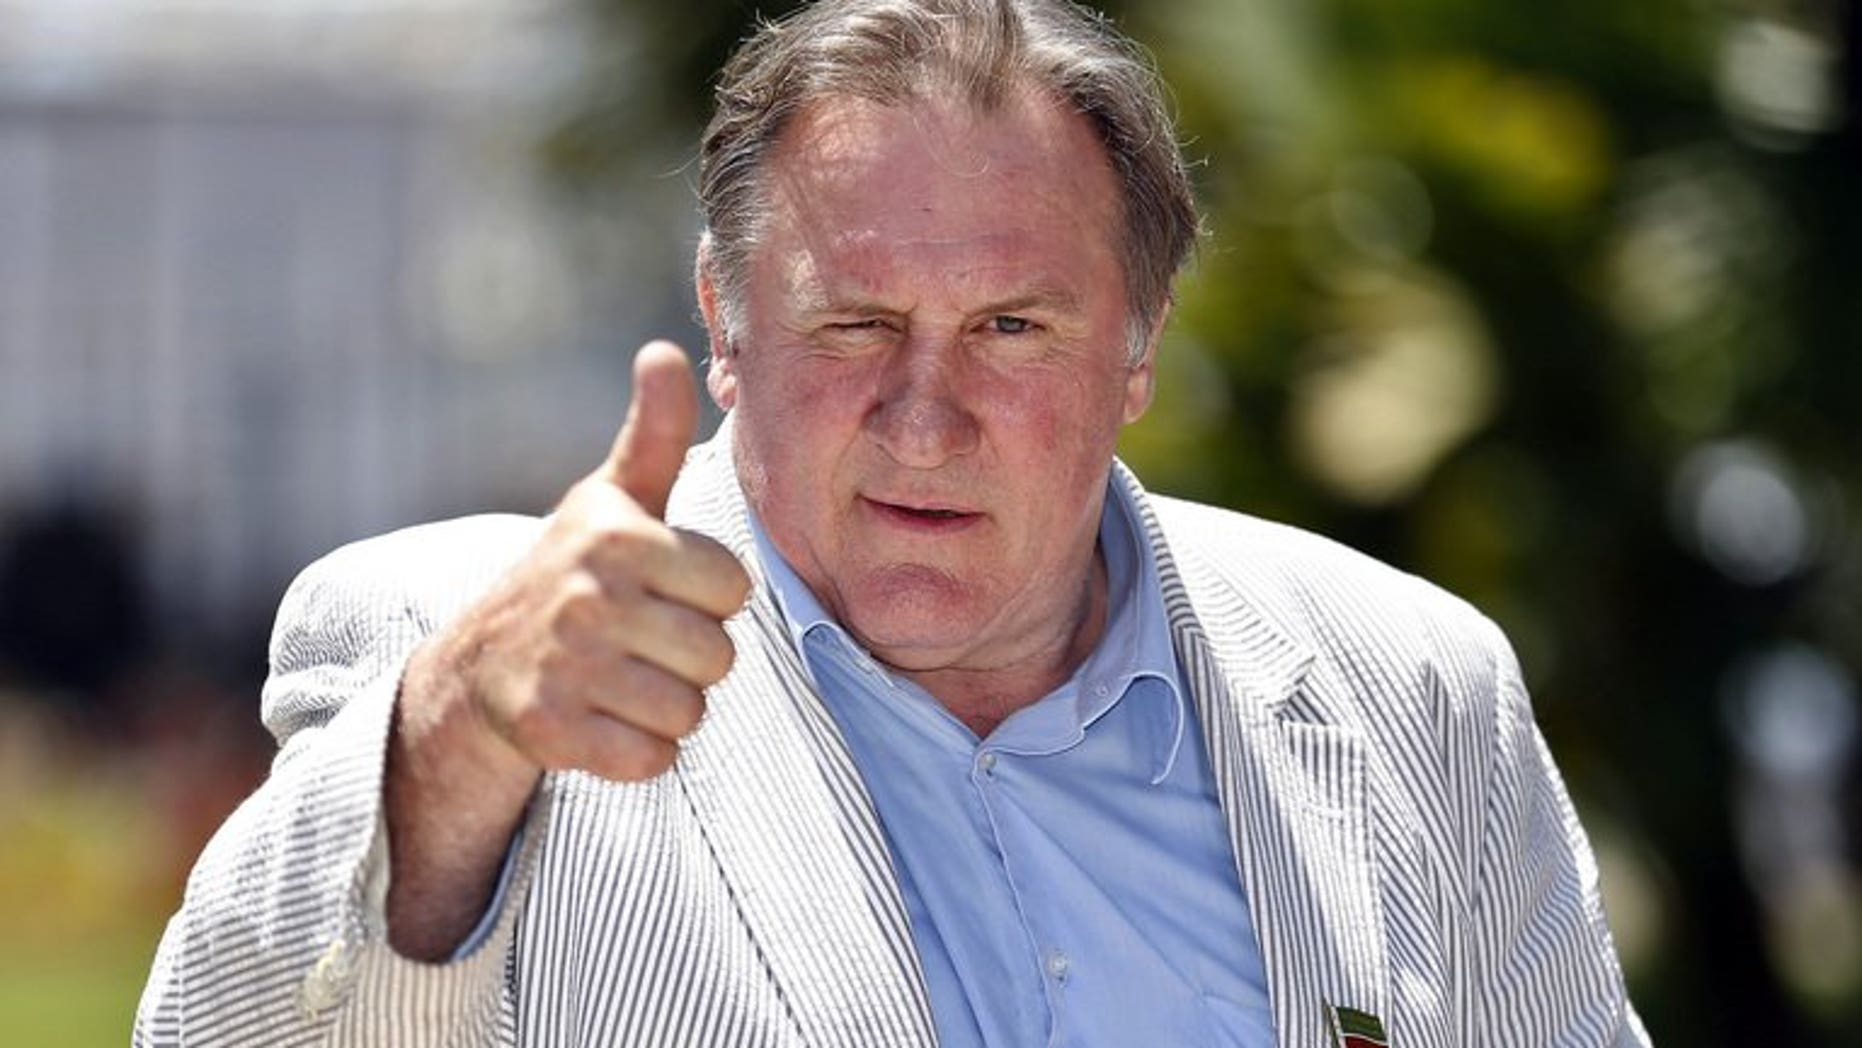 French-Russian actor Gerard Depardieu on June 6, 2013 in Nice. Authorities in the Belgian municipality of Estaimpuis made their most famous resident, Depardieu, an honorary citizen on Saturday ahead of a housewarming barbecue the French actor is due to host.